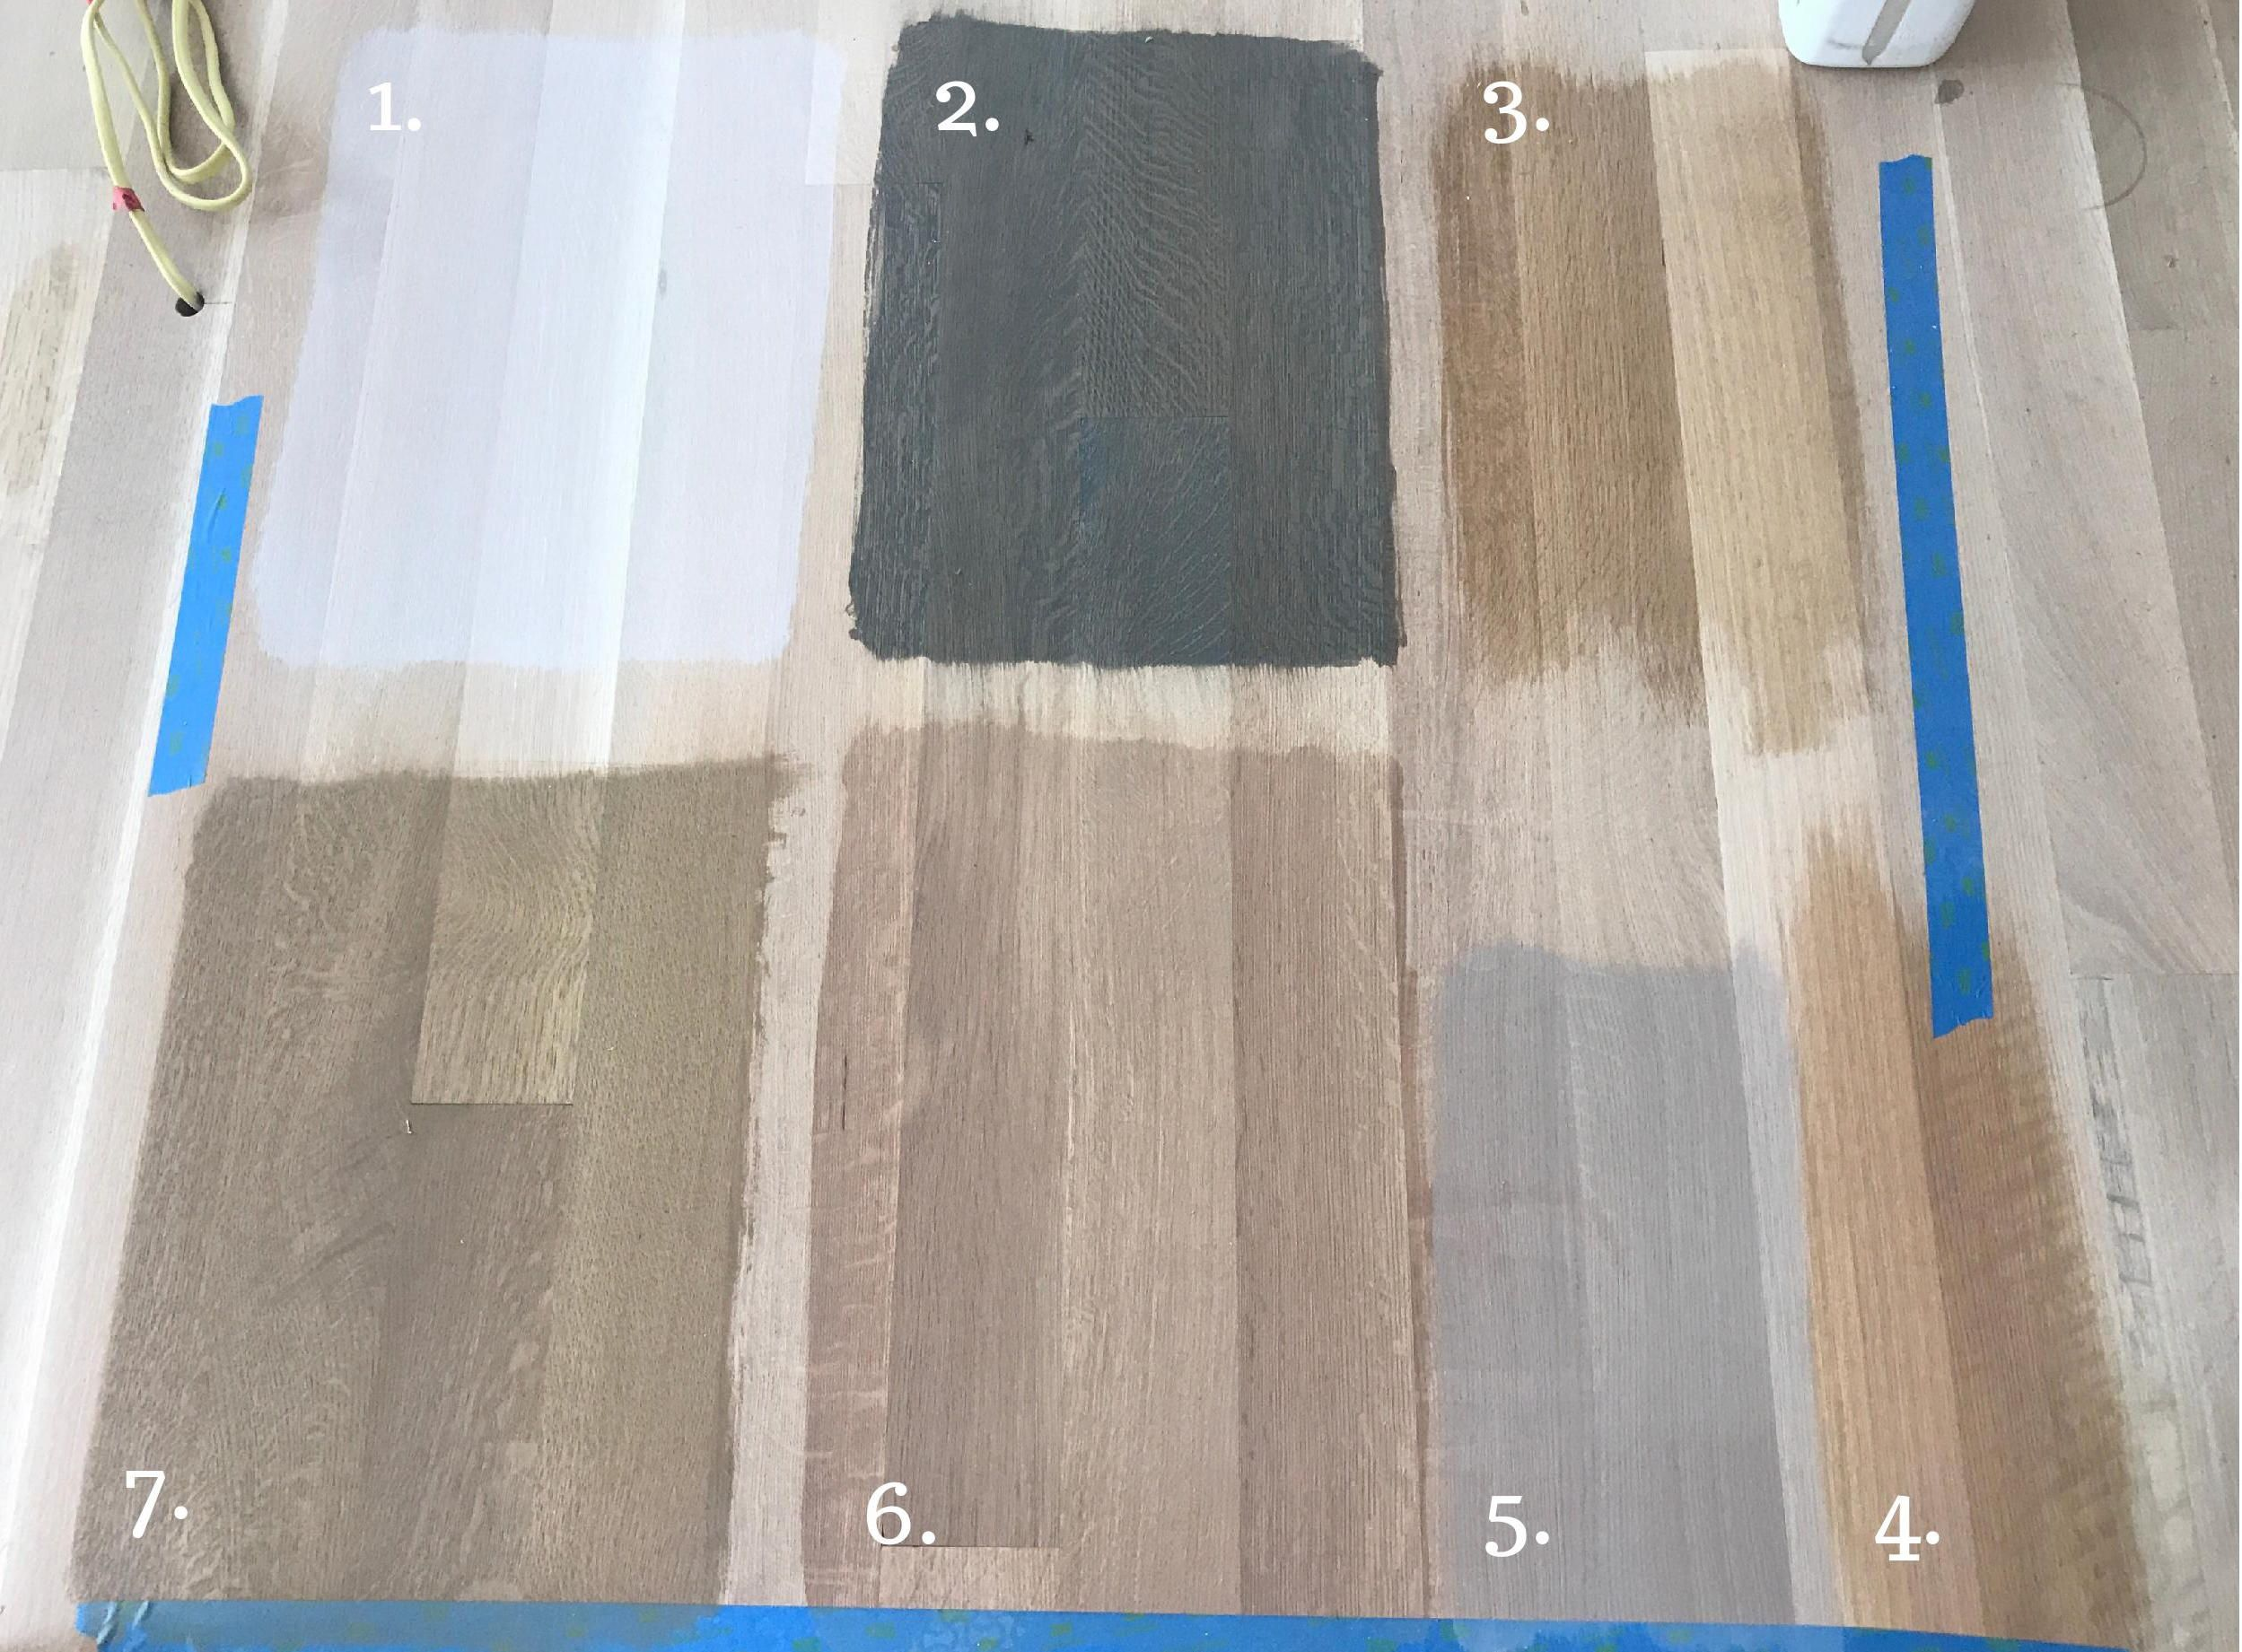 Time To Choose A Stain Color For White Oak Flooring Floor Stain Colors Wood Floor Stain Colors White Oak Hardwood Floors